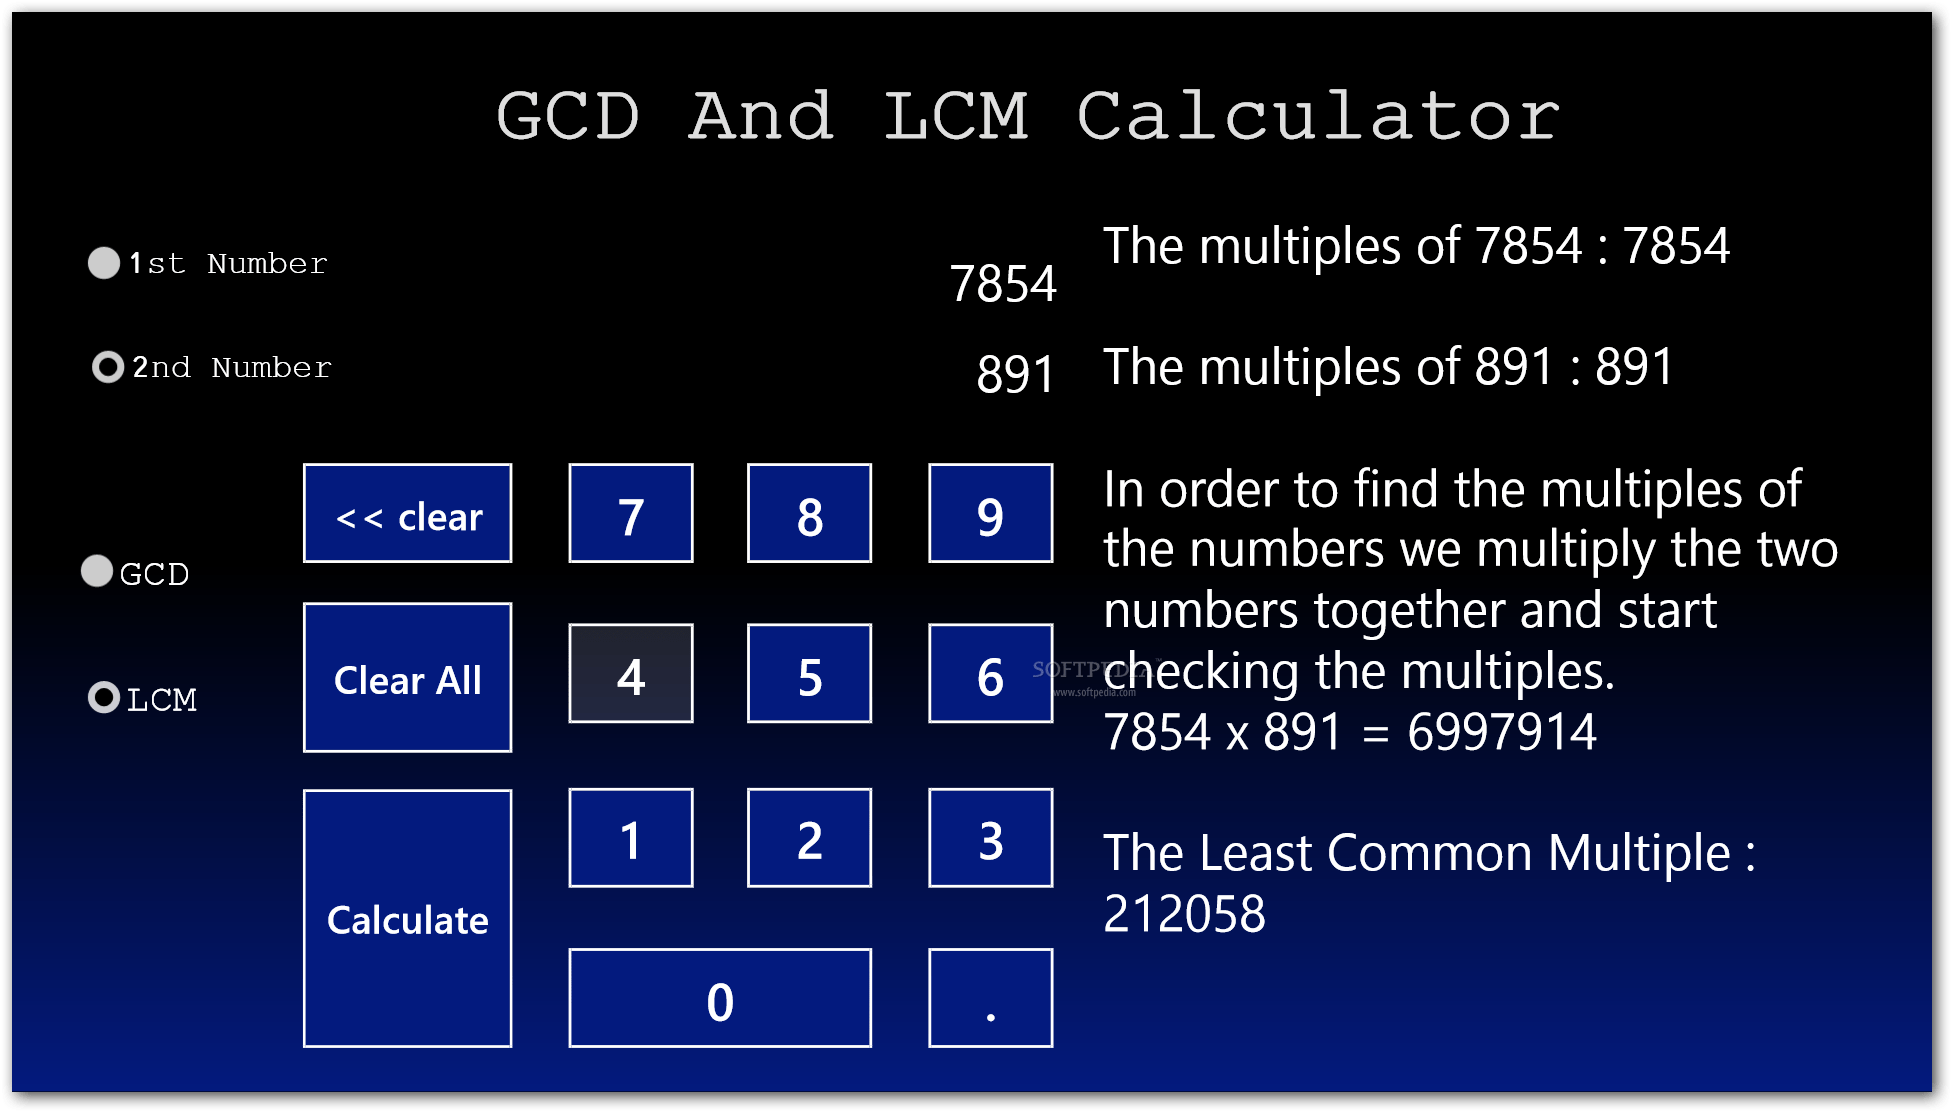 Download Gcd And Lcm Calculator For Windows 8 1 0 0 1